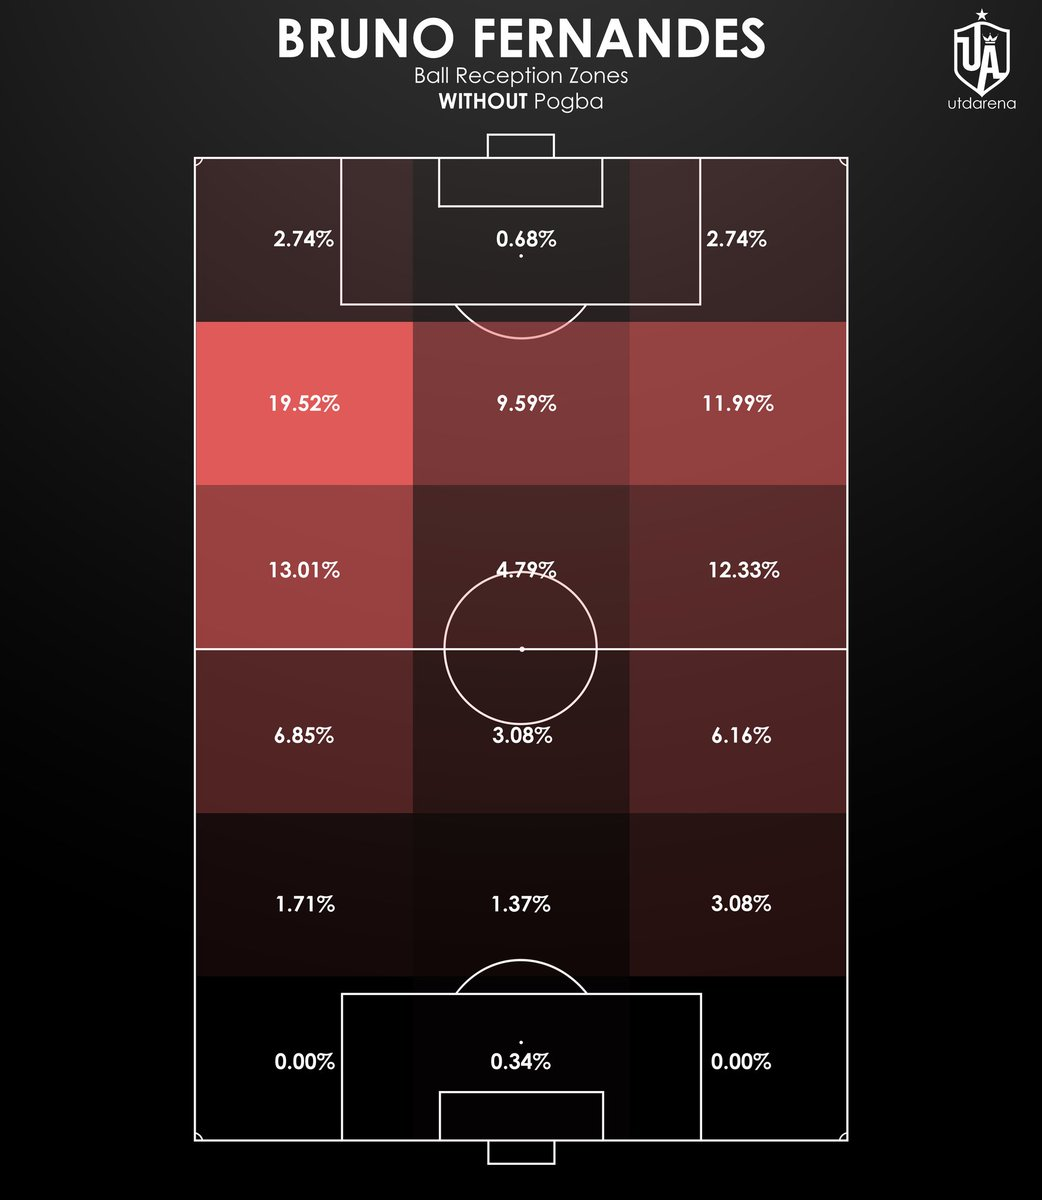 Where is Fernandes receiving the ball when Pogba is off or on the pitch?  When Pogba is on the pitch, Fernandes has received the ball higher up. This is due to three reasons: he trusts Pogba to progress; Pogba finds him in between the lines; and we have more territory. https://t.co/ZxCDhXA7wr